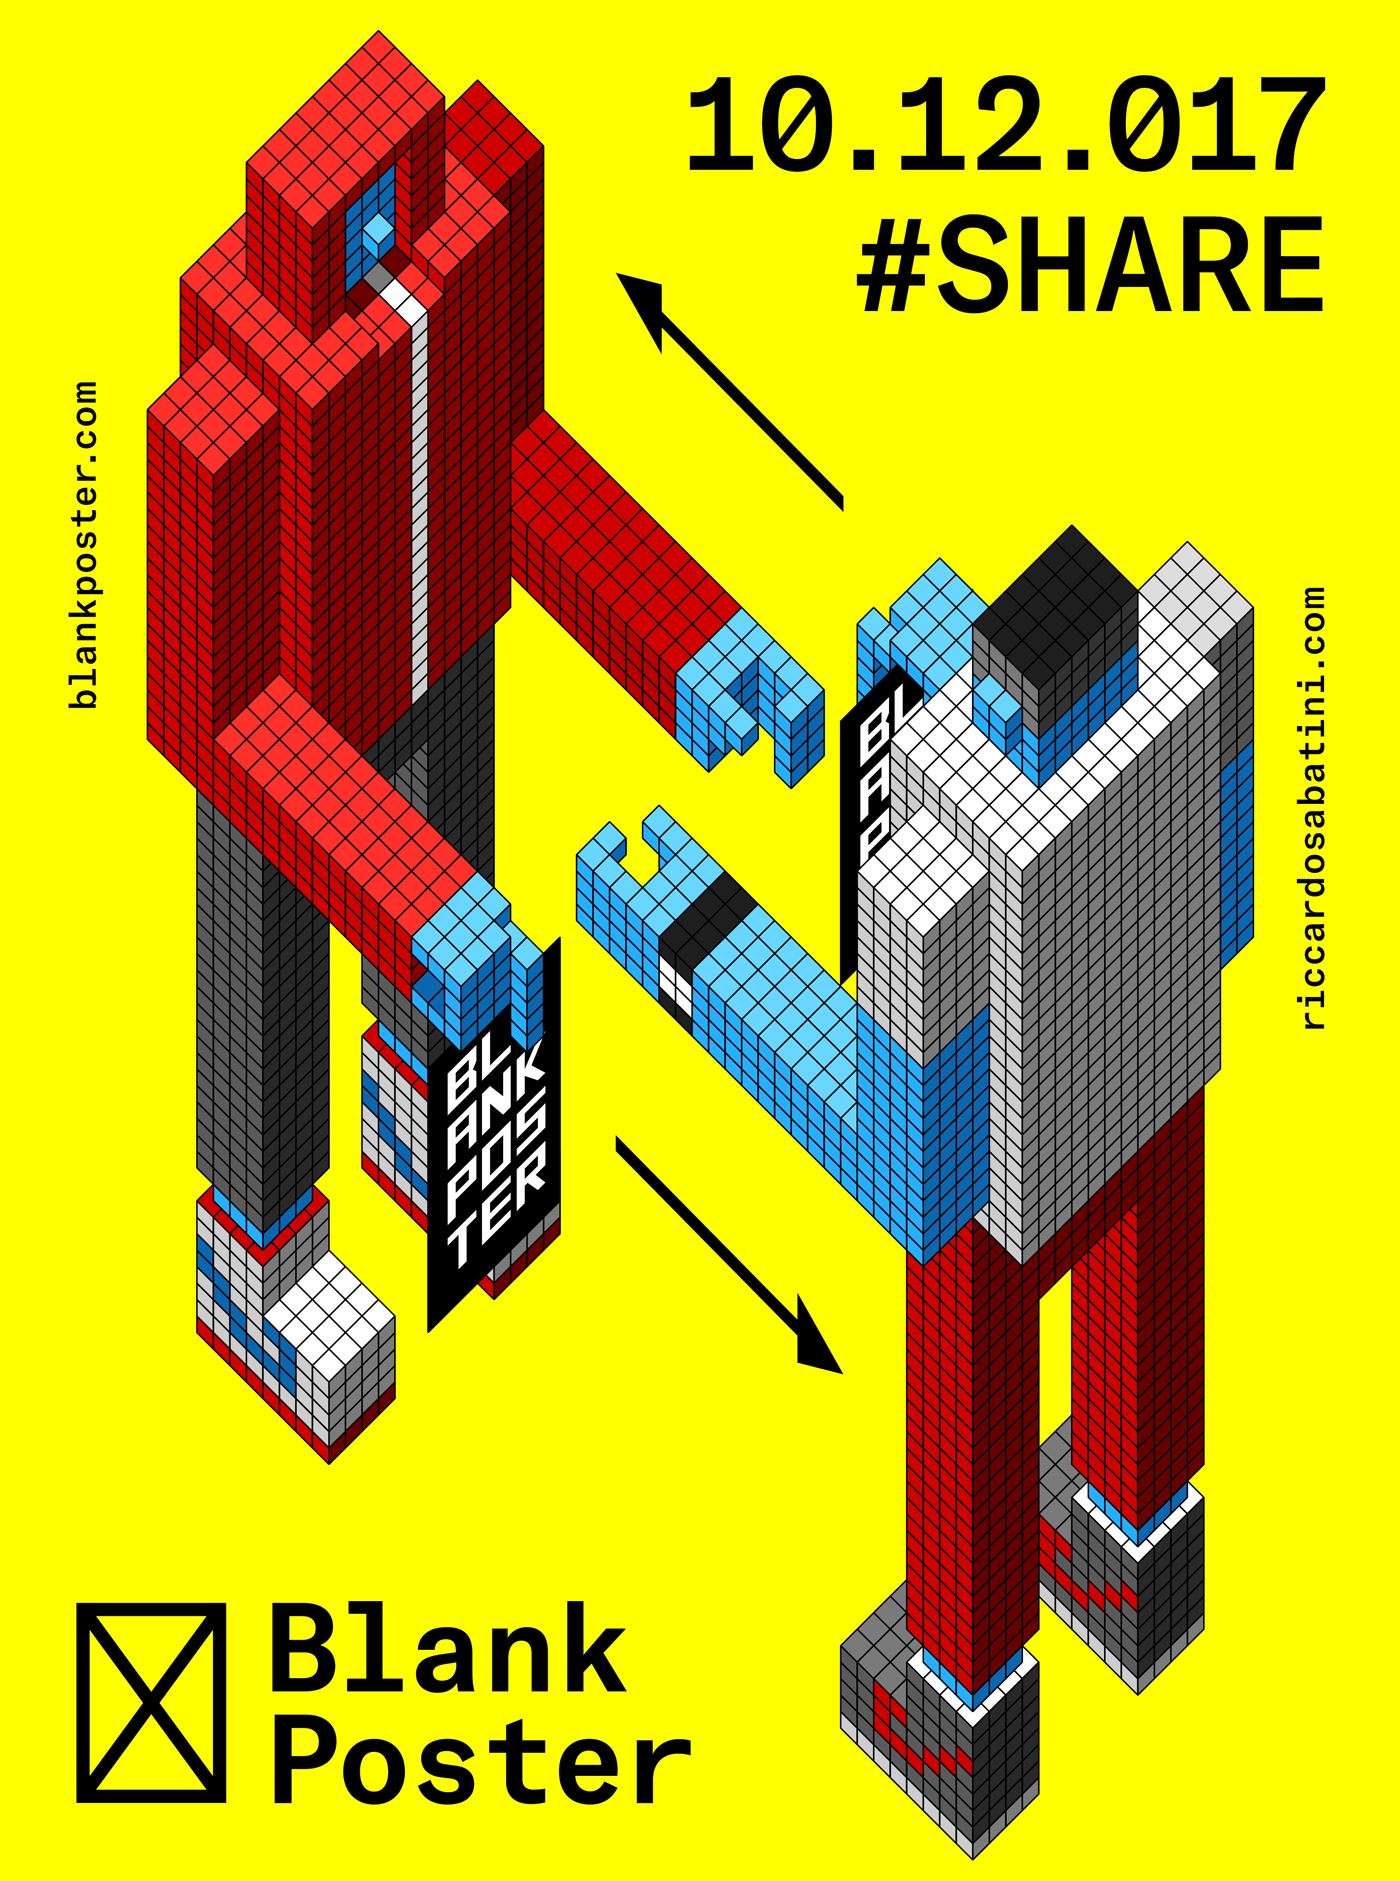 blankposter-share-new